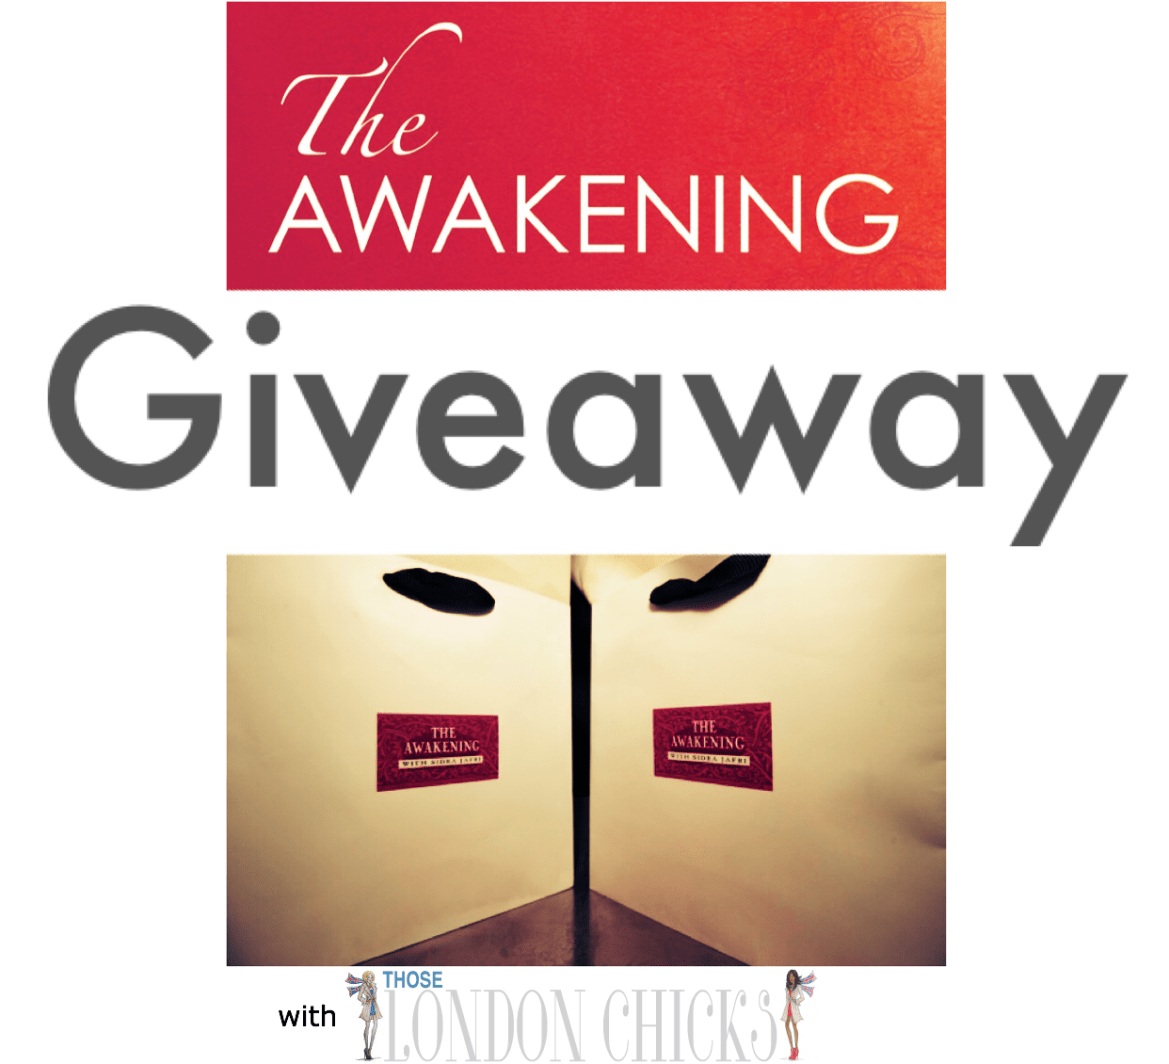 the-awakening-giveaway-sign-up-competition-free-goodie-bag-goody